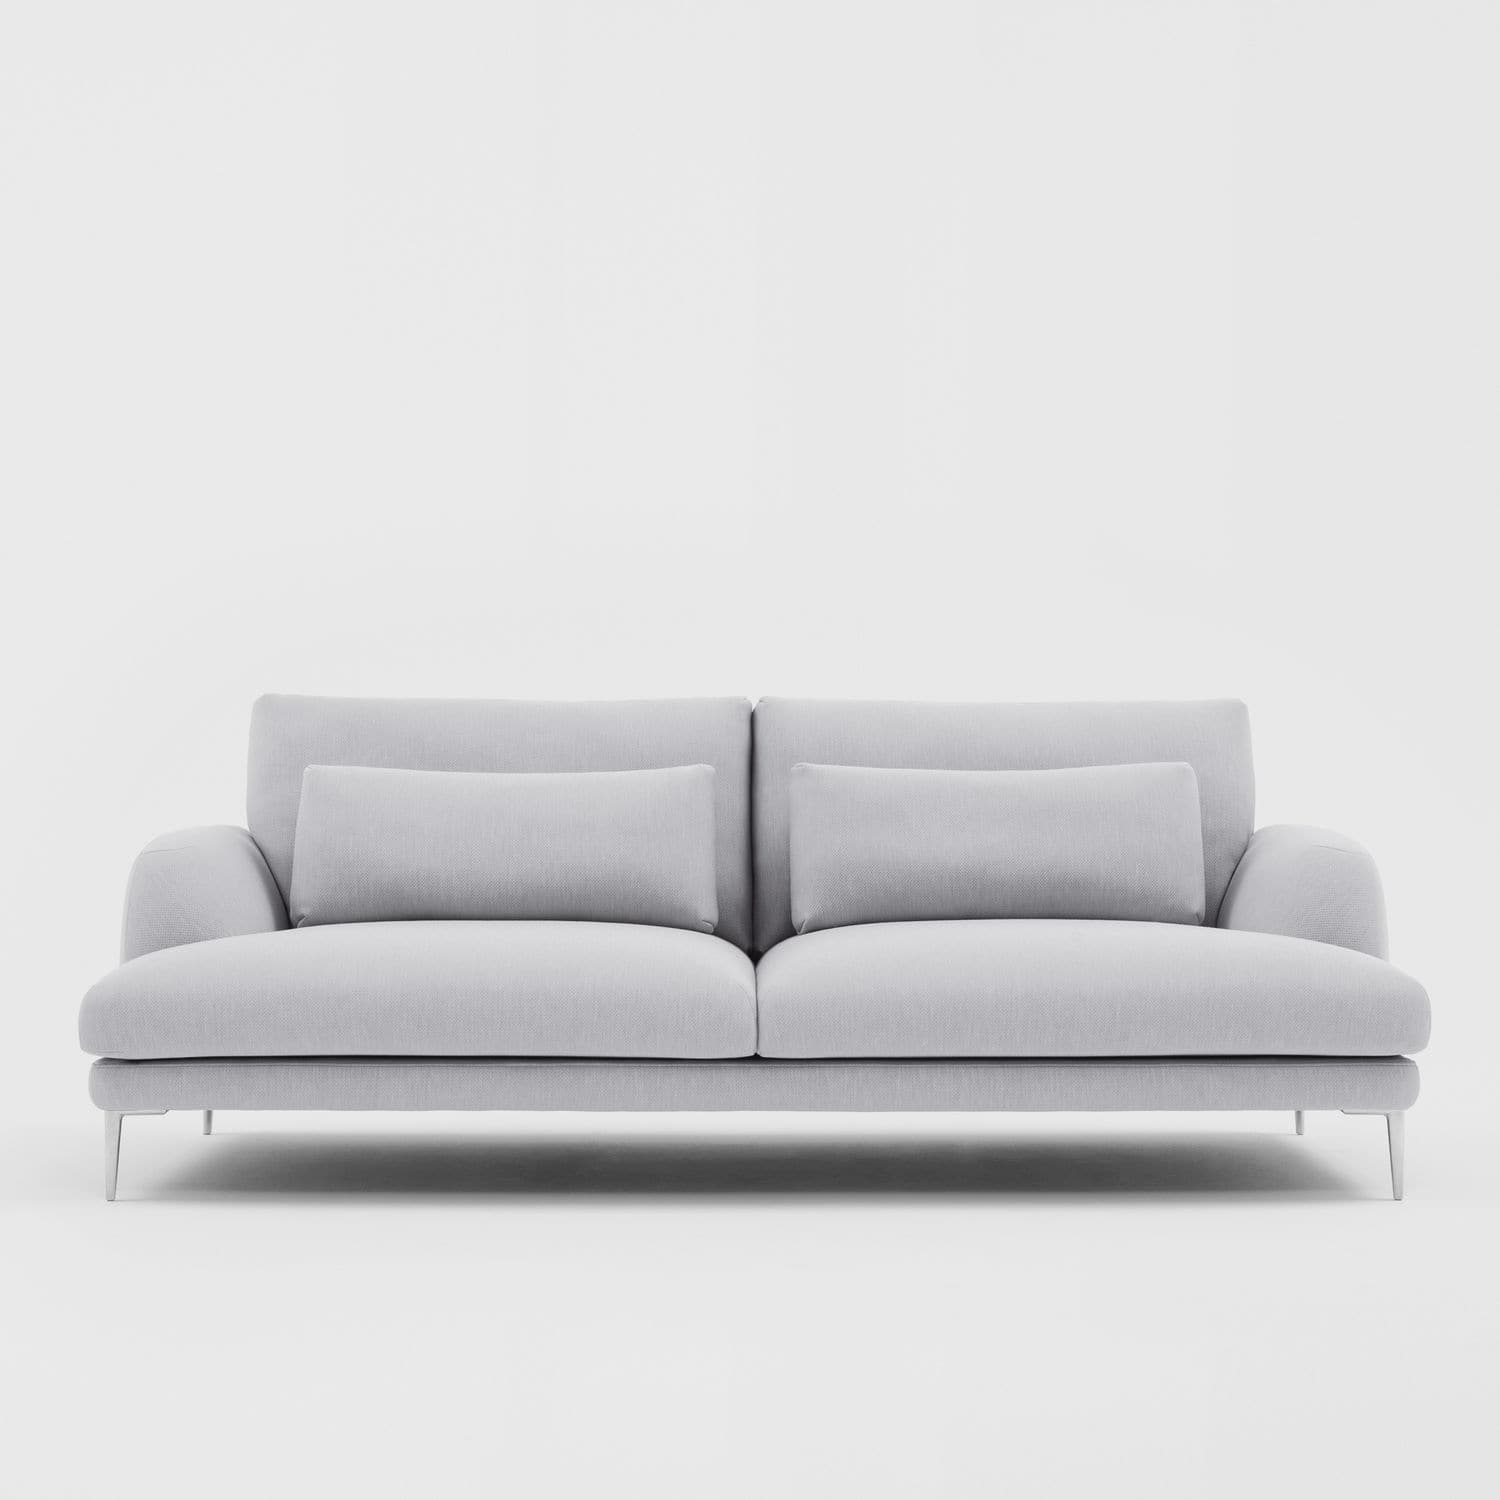 Contemporary sofa fabric 2 person white classic by krystian kowalski